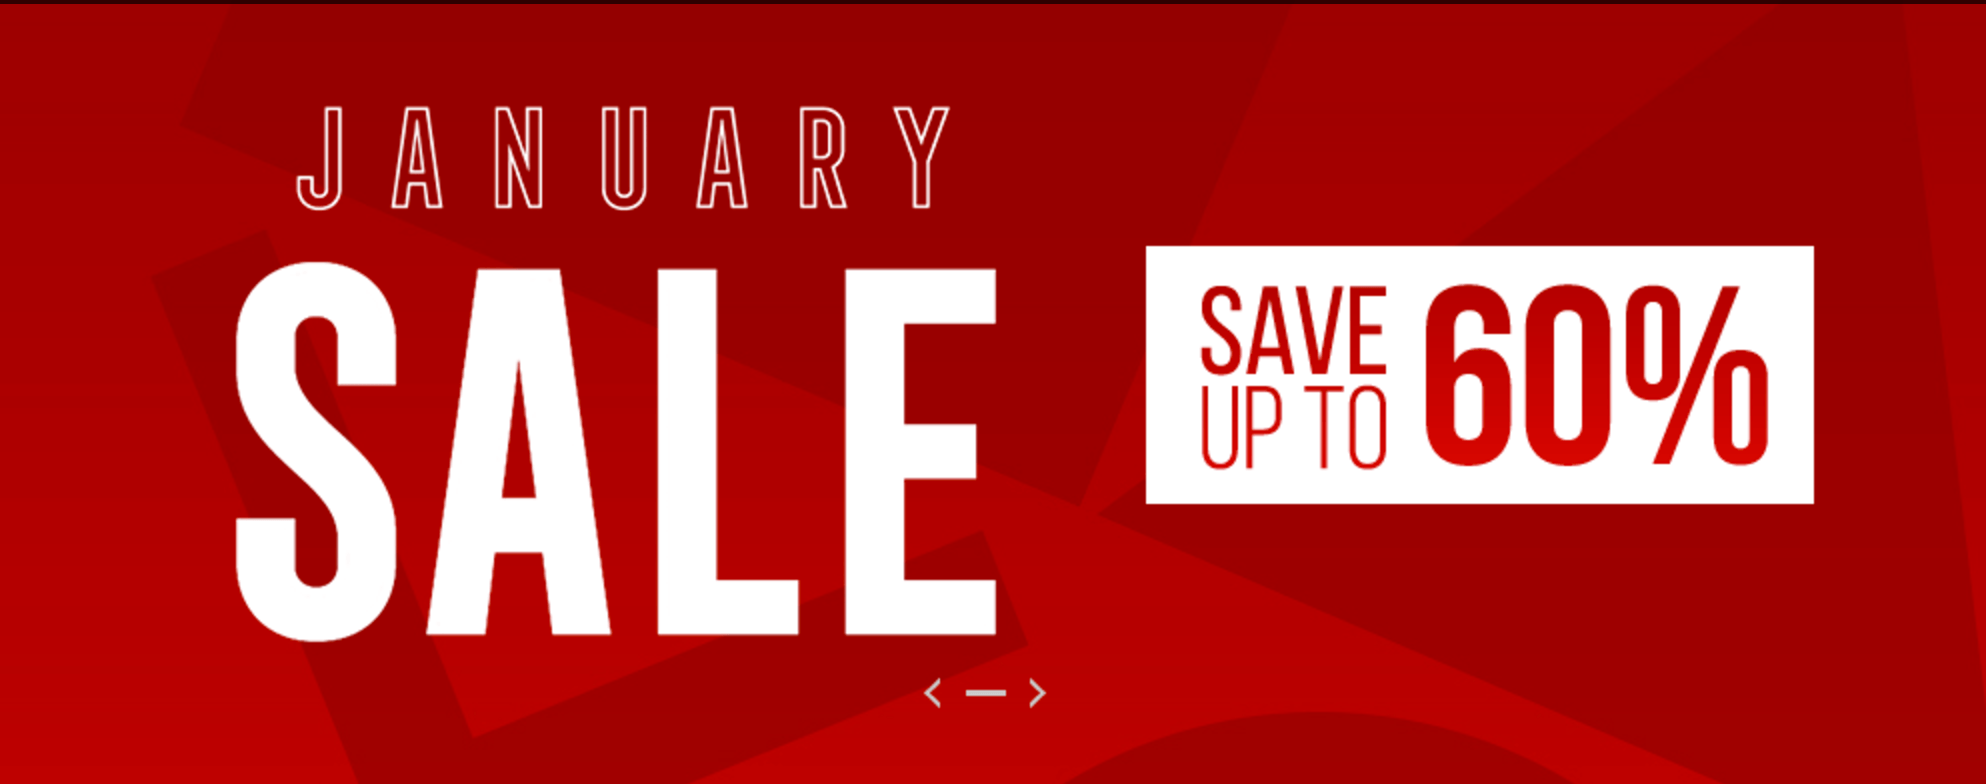 Just 'Crazy' January Sales